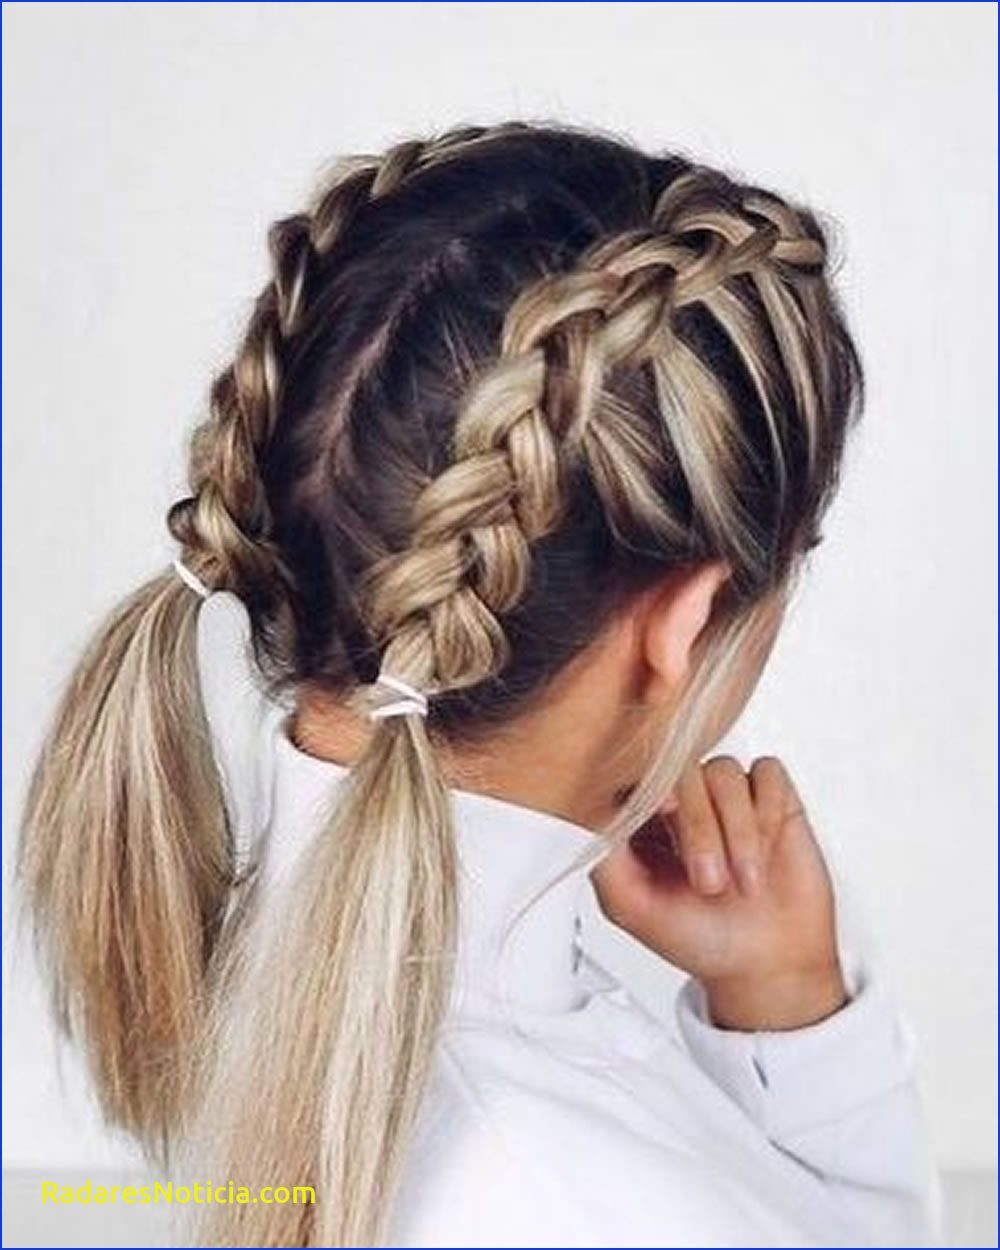 Best Braids Hairstyles 2019 Pictures Ideas Radaresnoticia Com French Braid Hairstyles Thick Hair Styles Hair Styles